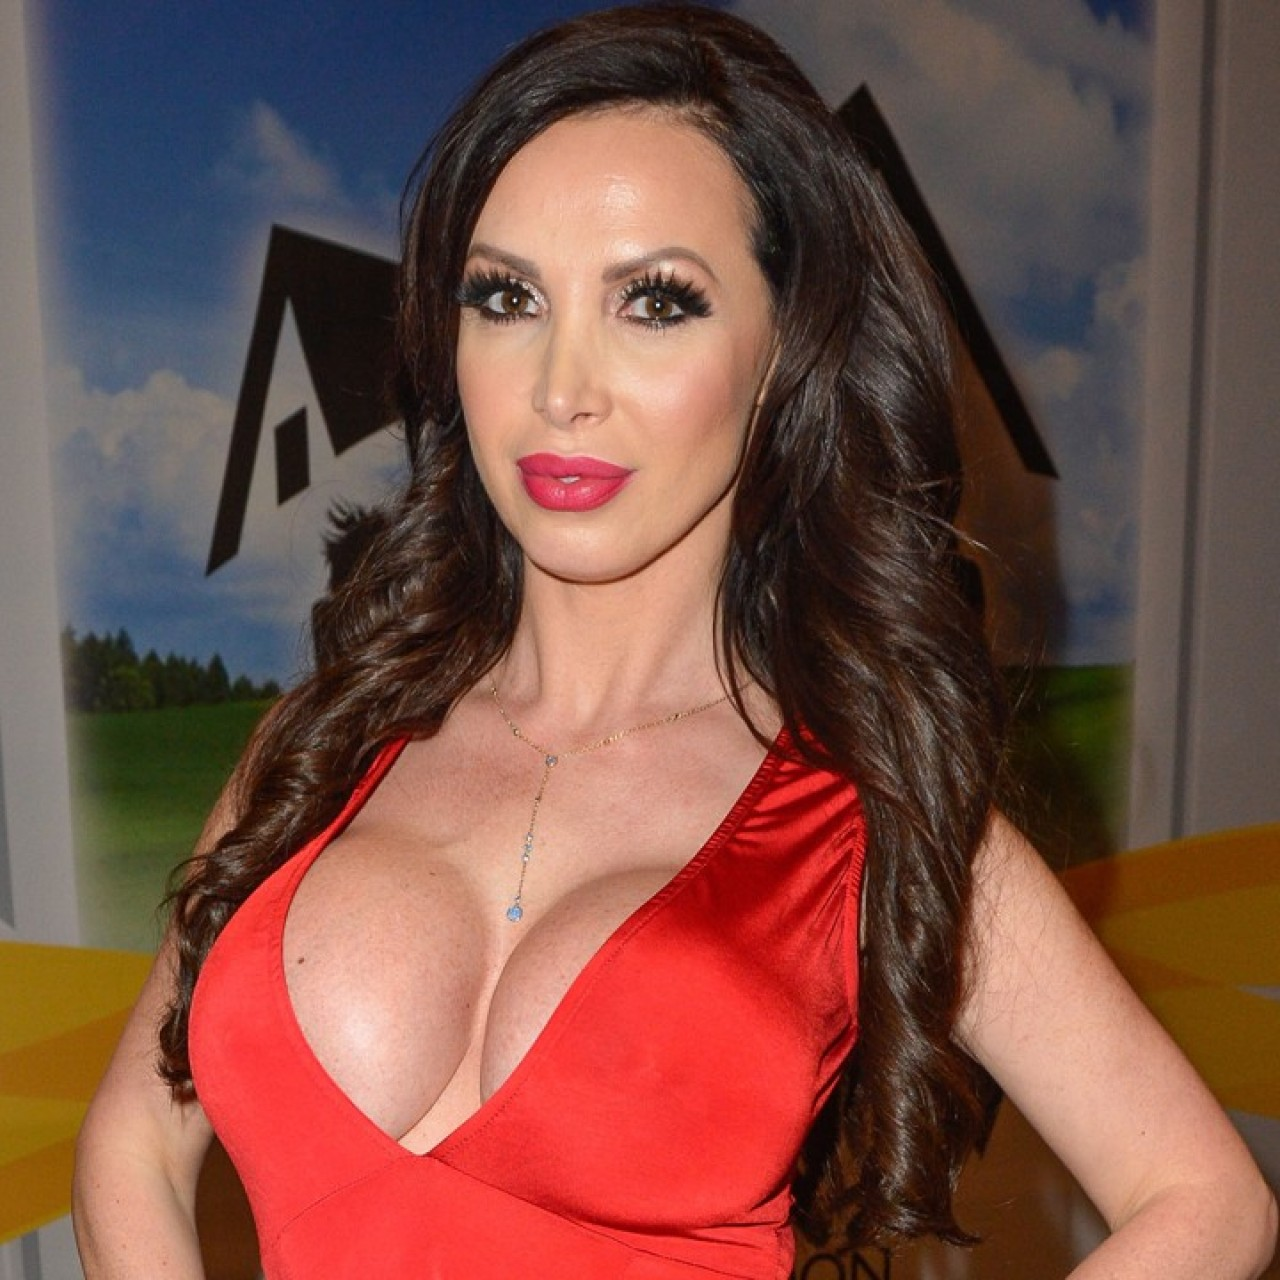 Porn star Nikki Benz sues website Brazzers after 'she was